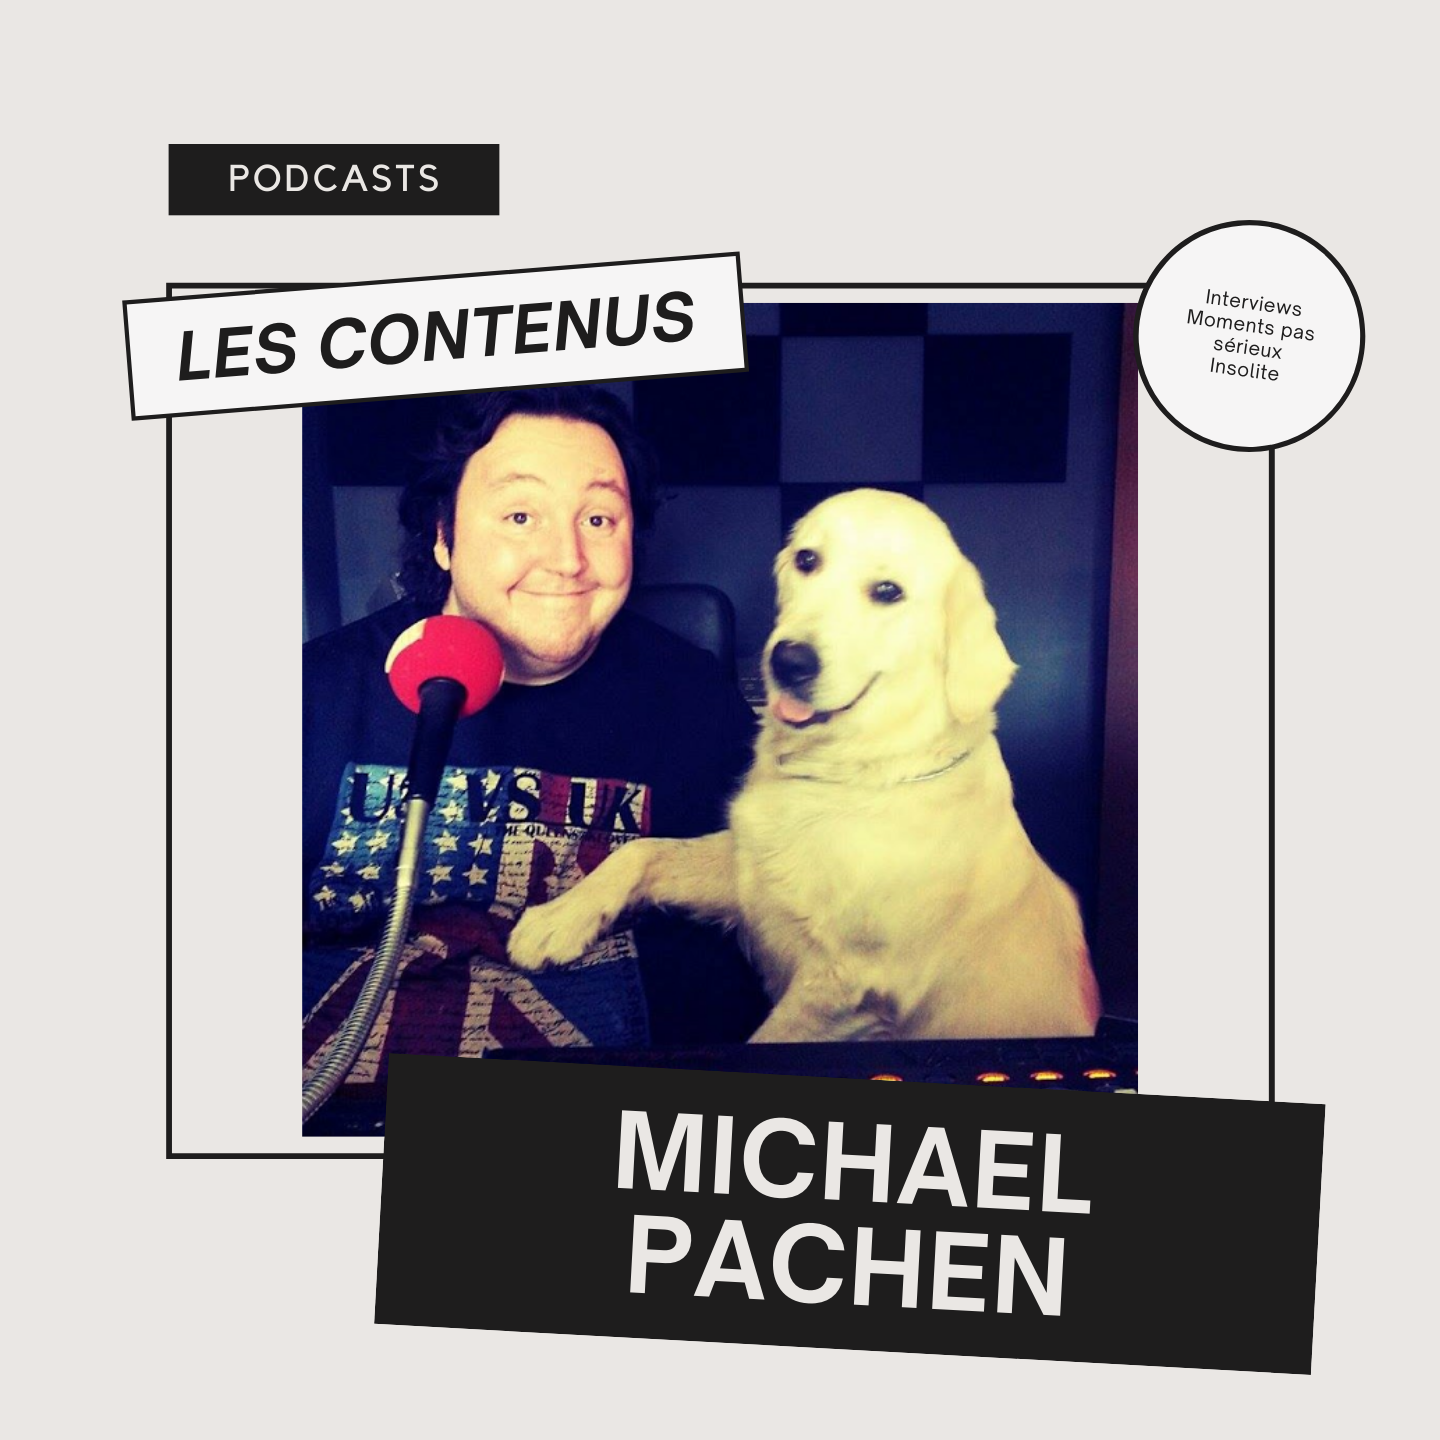 Michael Pachen Podcast